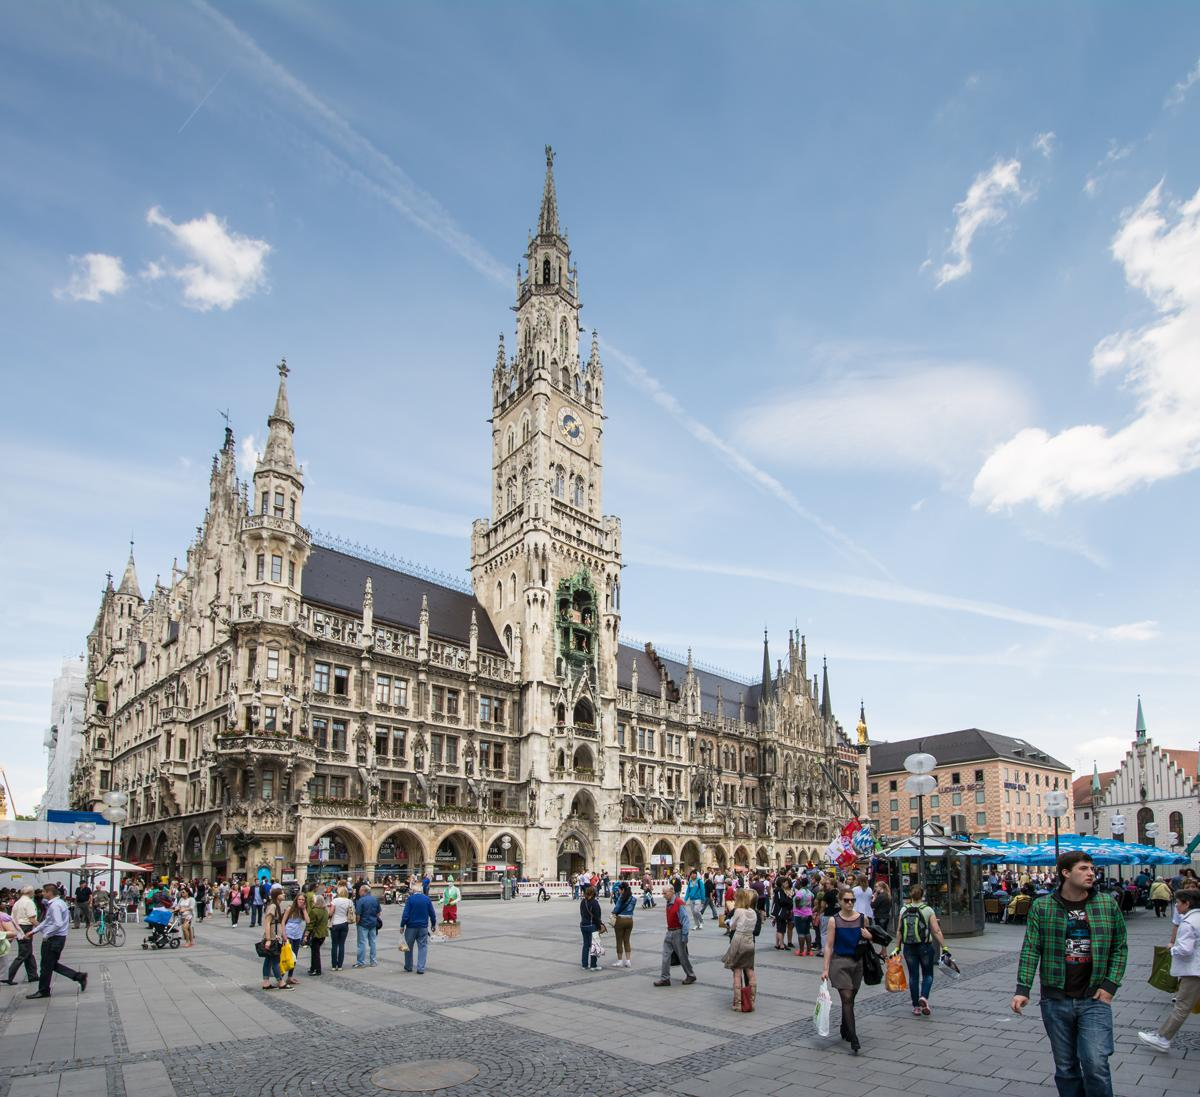 Munich: one of the 'hot cities' identified in the HVS preview of 2015 / Shutterstock: manfredxy